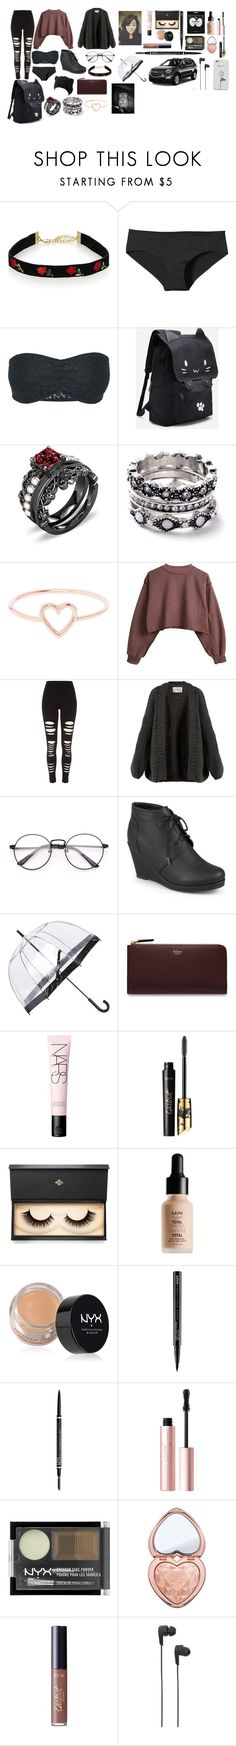 """""""Shopping days"""" by fandomlover1234 on Polyvore featuring Patagonia, WithChic, Love Is, River Island, I Love Mr. Mittens, Journee Collection, Fulton, Mulberry, NARS Cosmetics and tarte"""